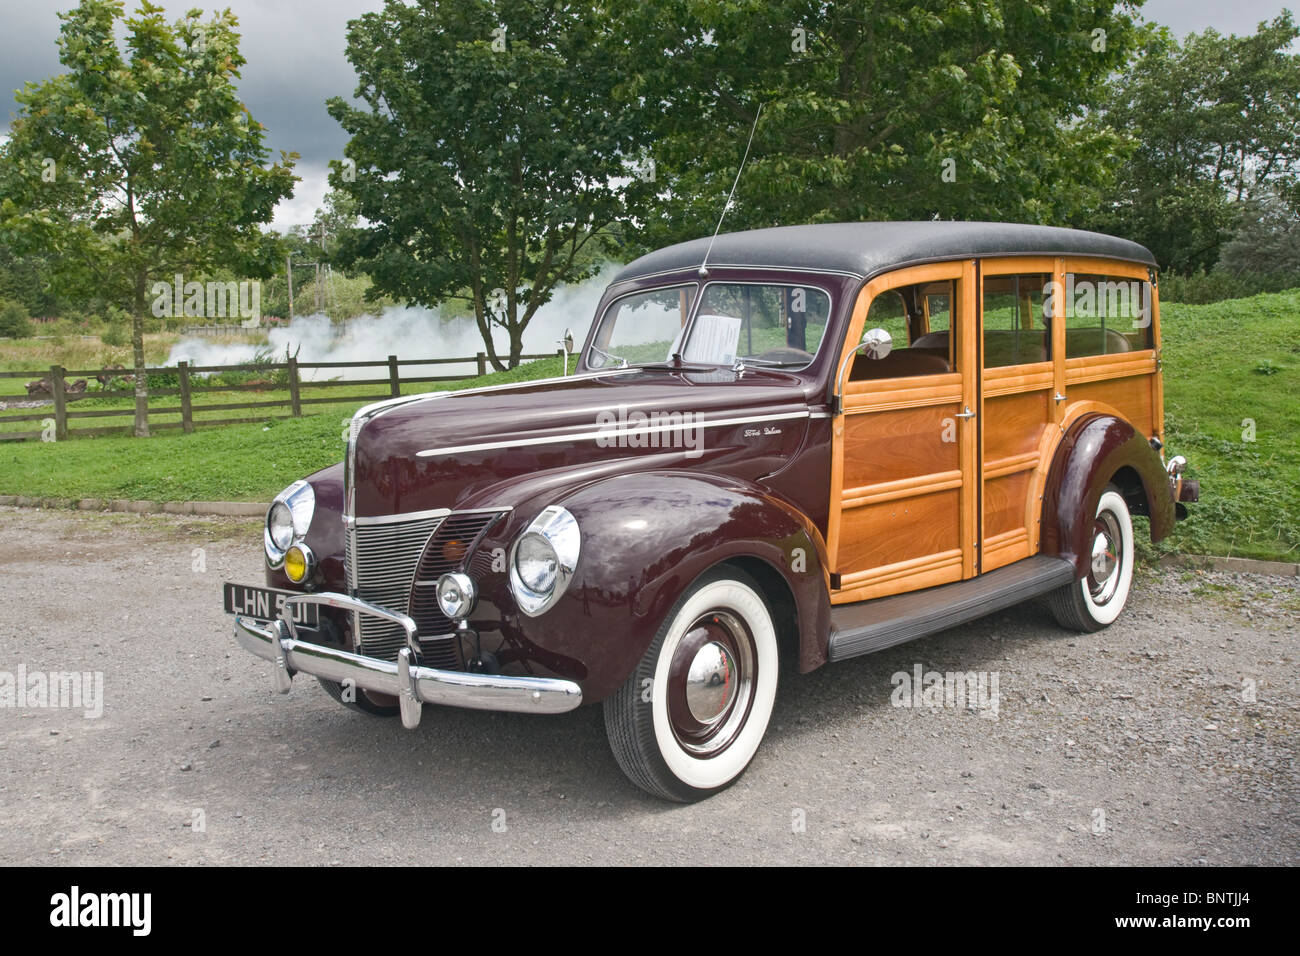 Old American Station Wagon Stock Photos & Old American Station Wagon ...